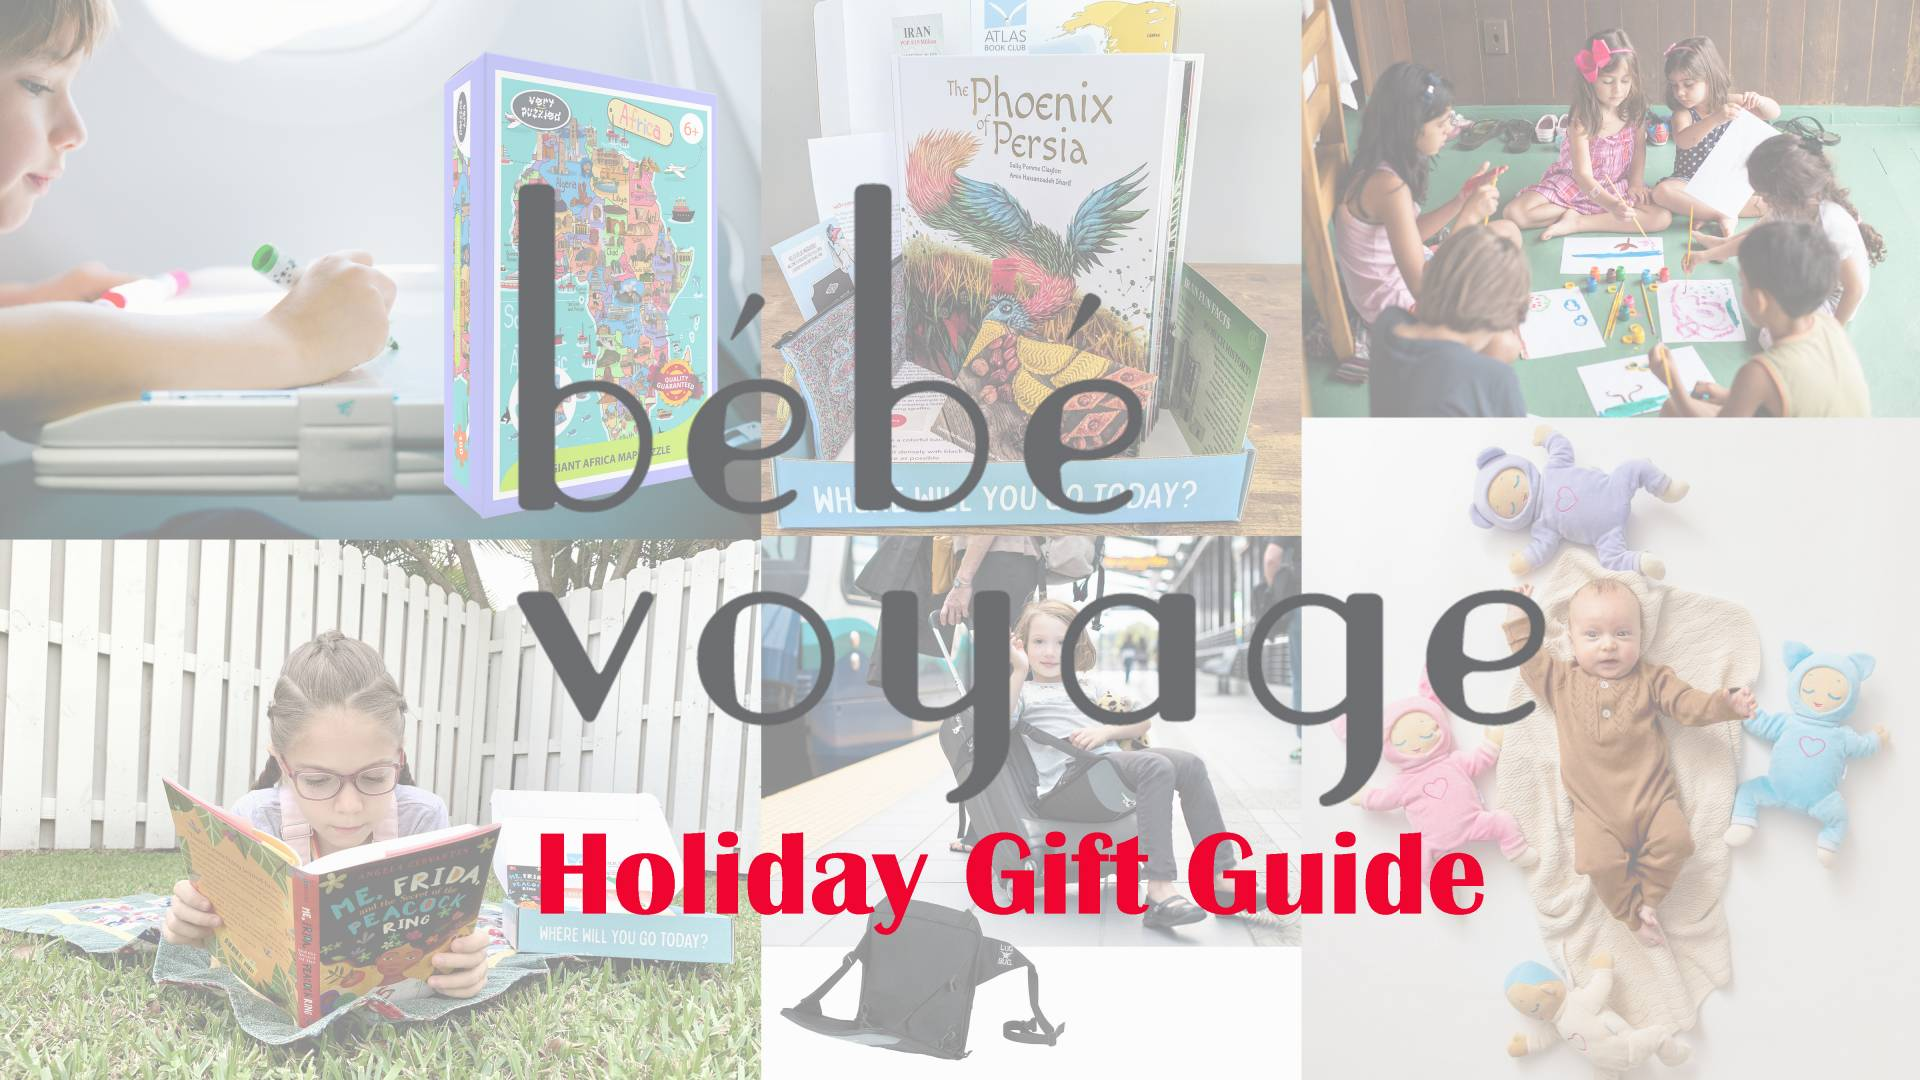 Bébé Voyage Holiday Gift Guide 2020